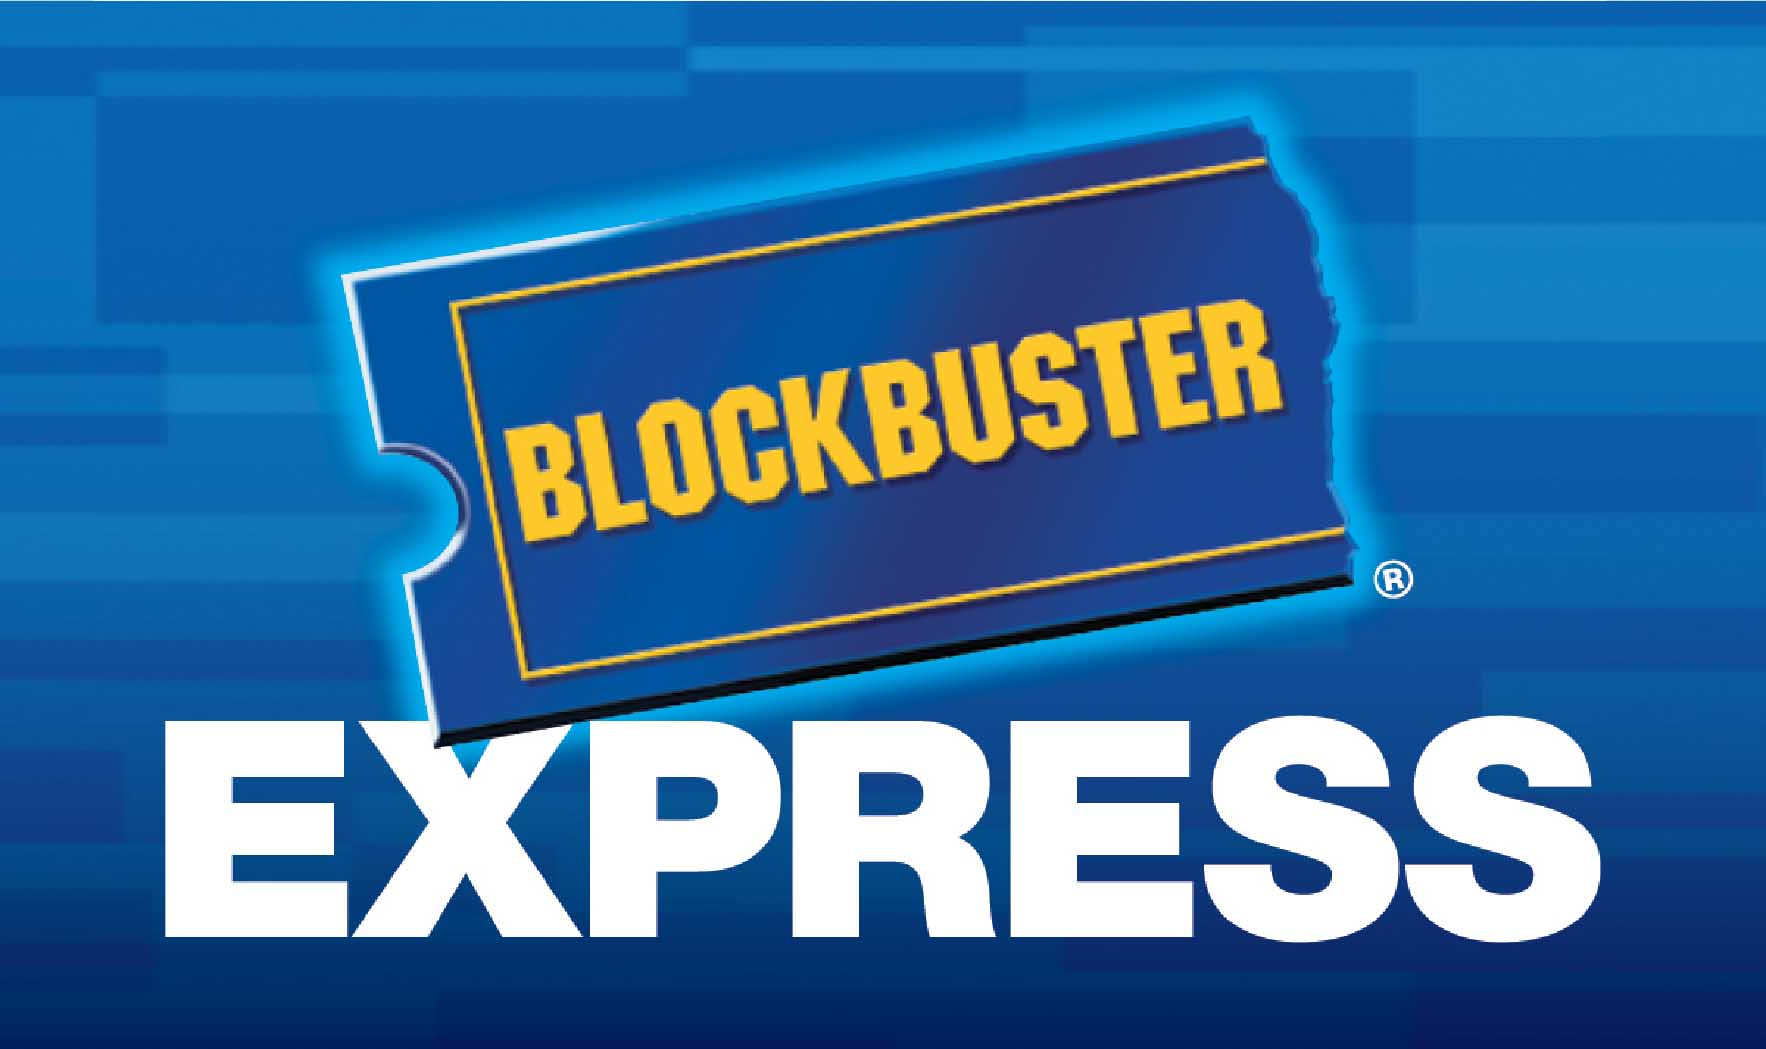 blockbuster video Buy blockbuster trailer by pmwa on videohive hi friends, this is an adobe after effects project template made for your movie trailer or movie titles needs you c.